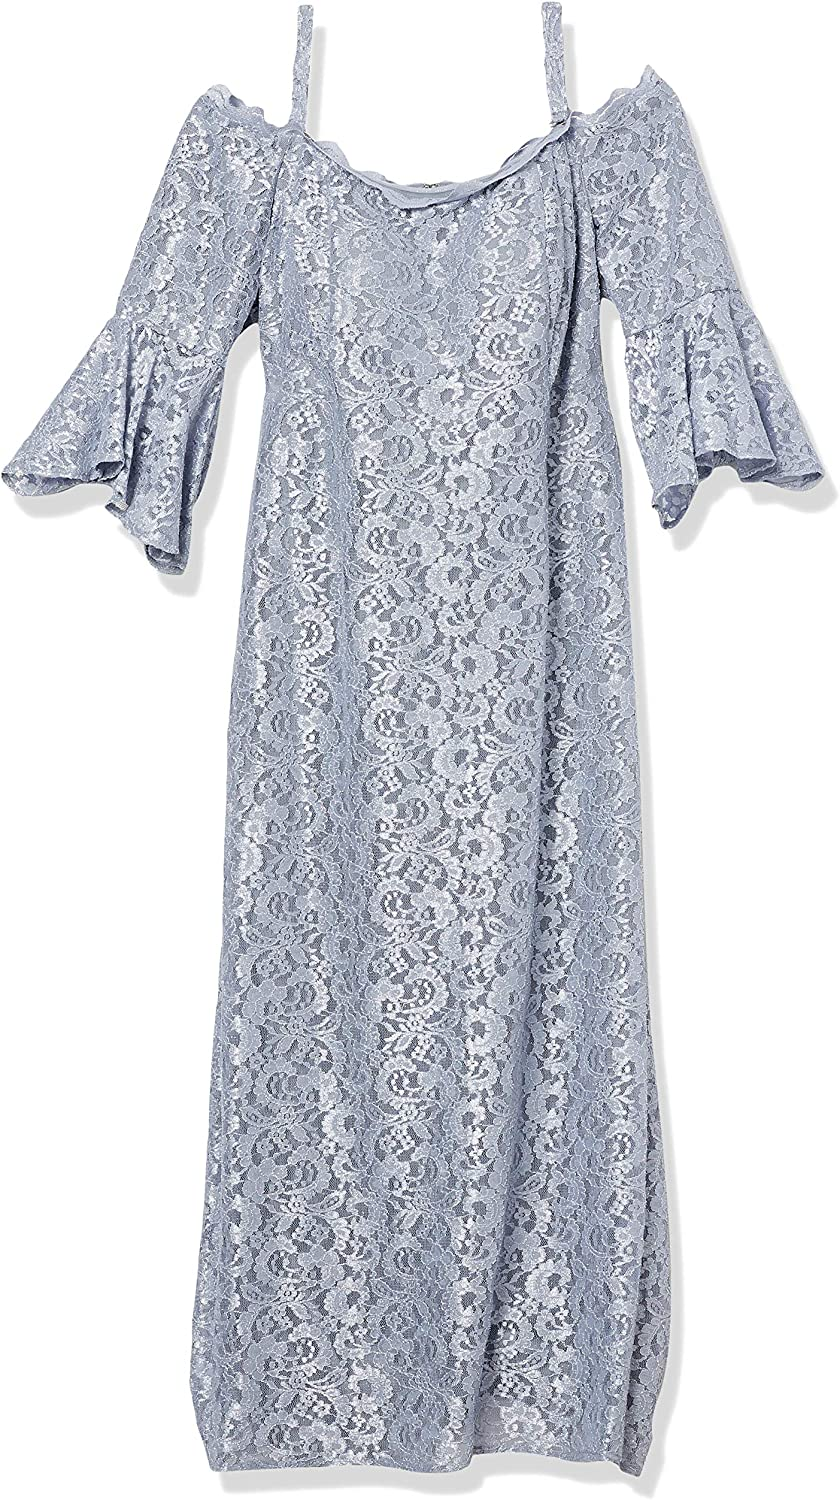 R&M Richards Women's Plus Size Missy One Piece Lace Fitted Bell Sleeve Dress